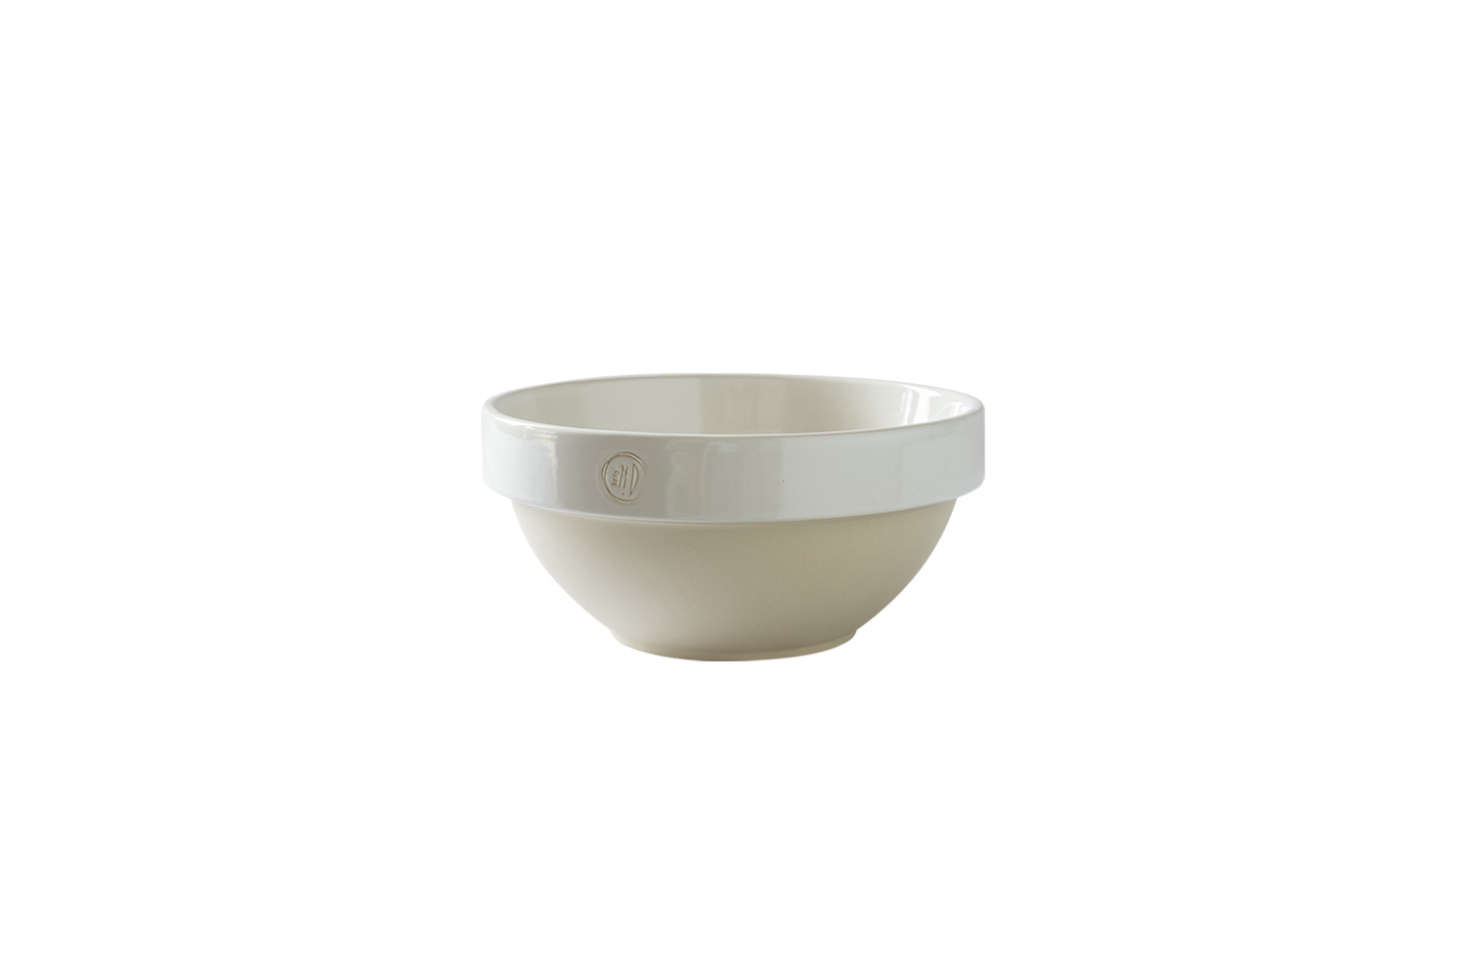 The Manufacture de Digoin Large Salad Bowl is $96 at the French Farm.